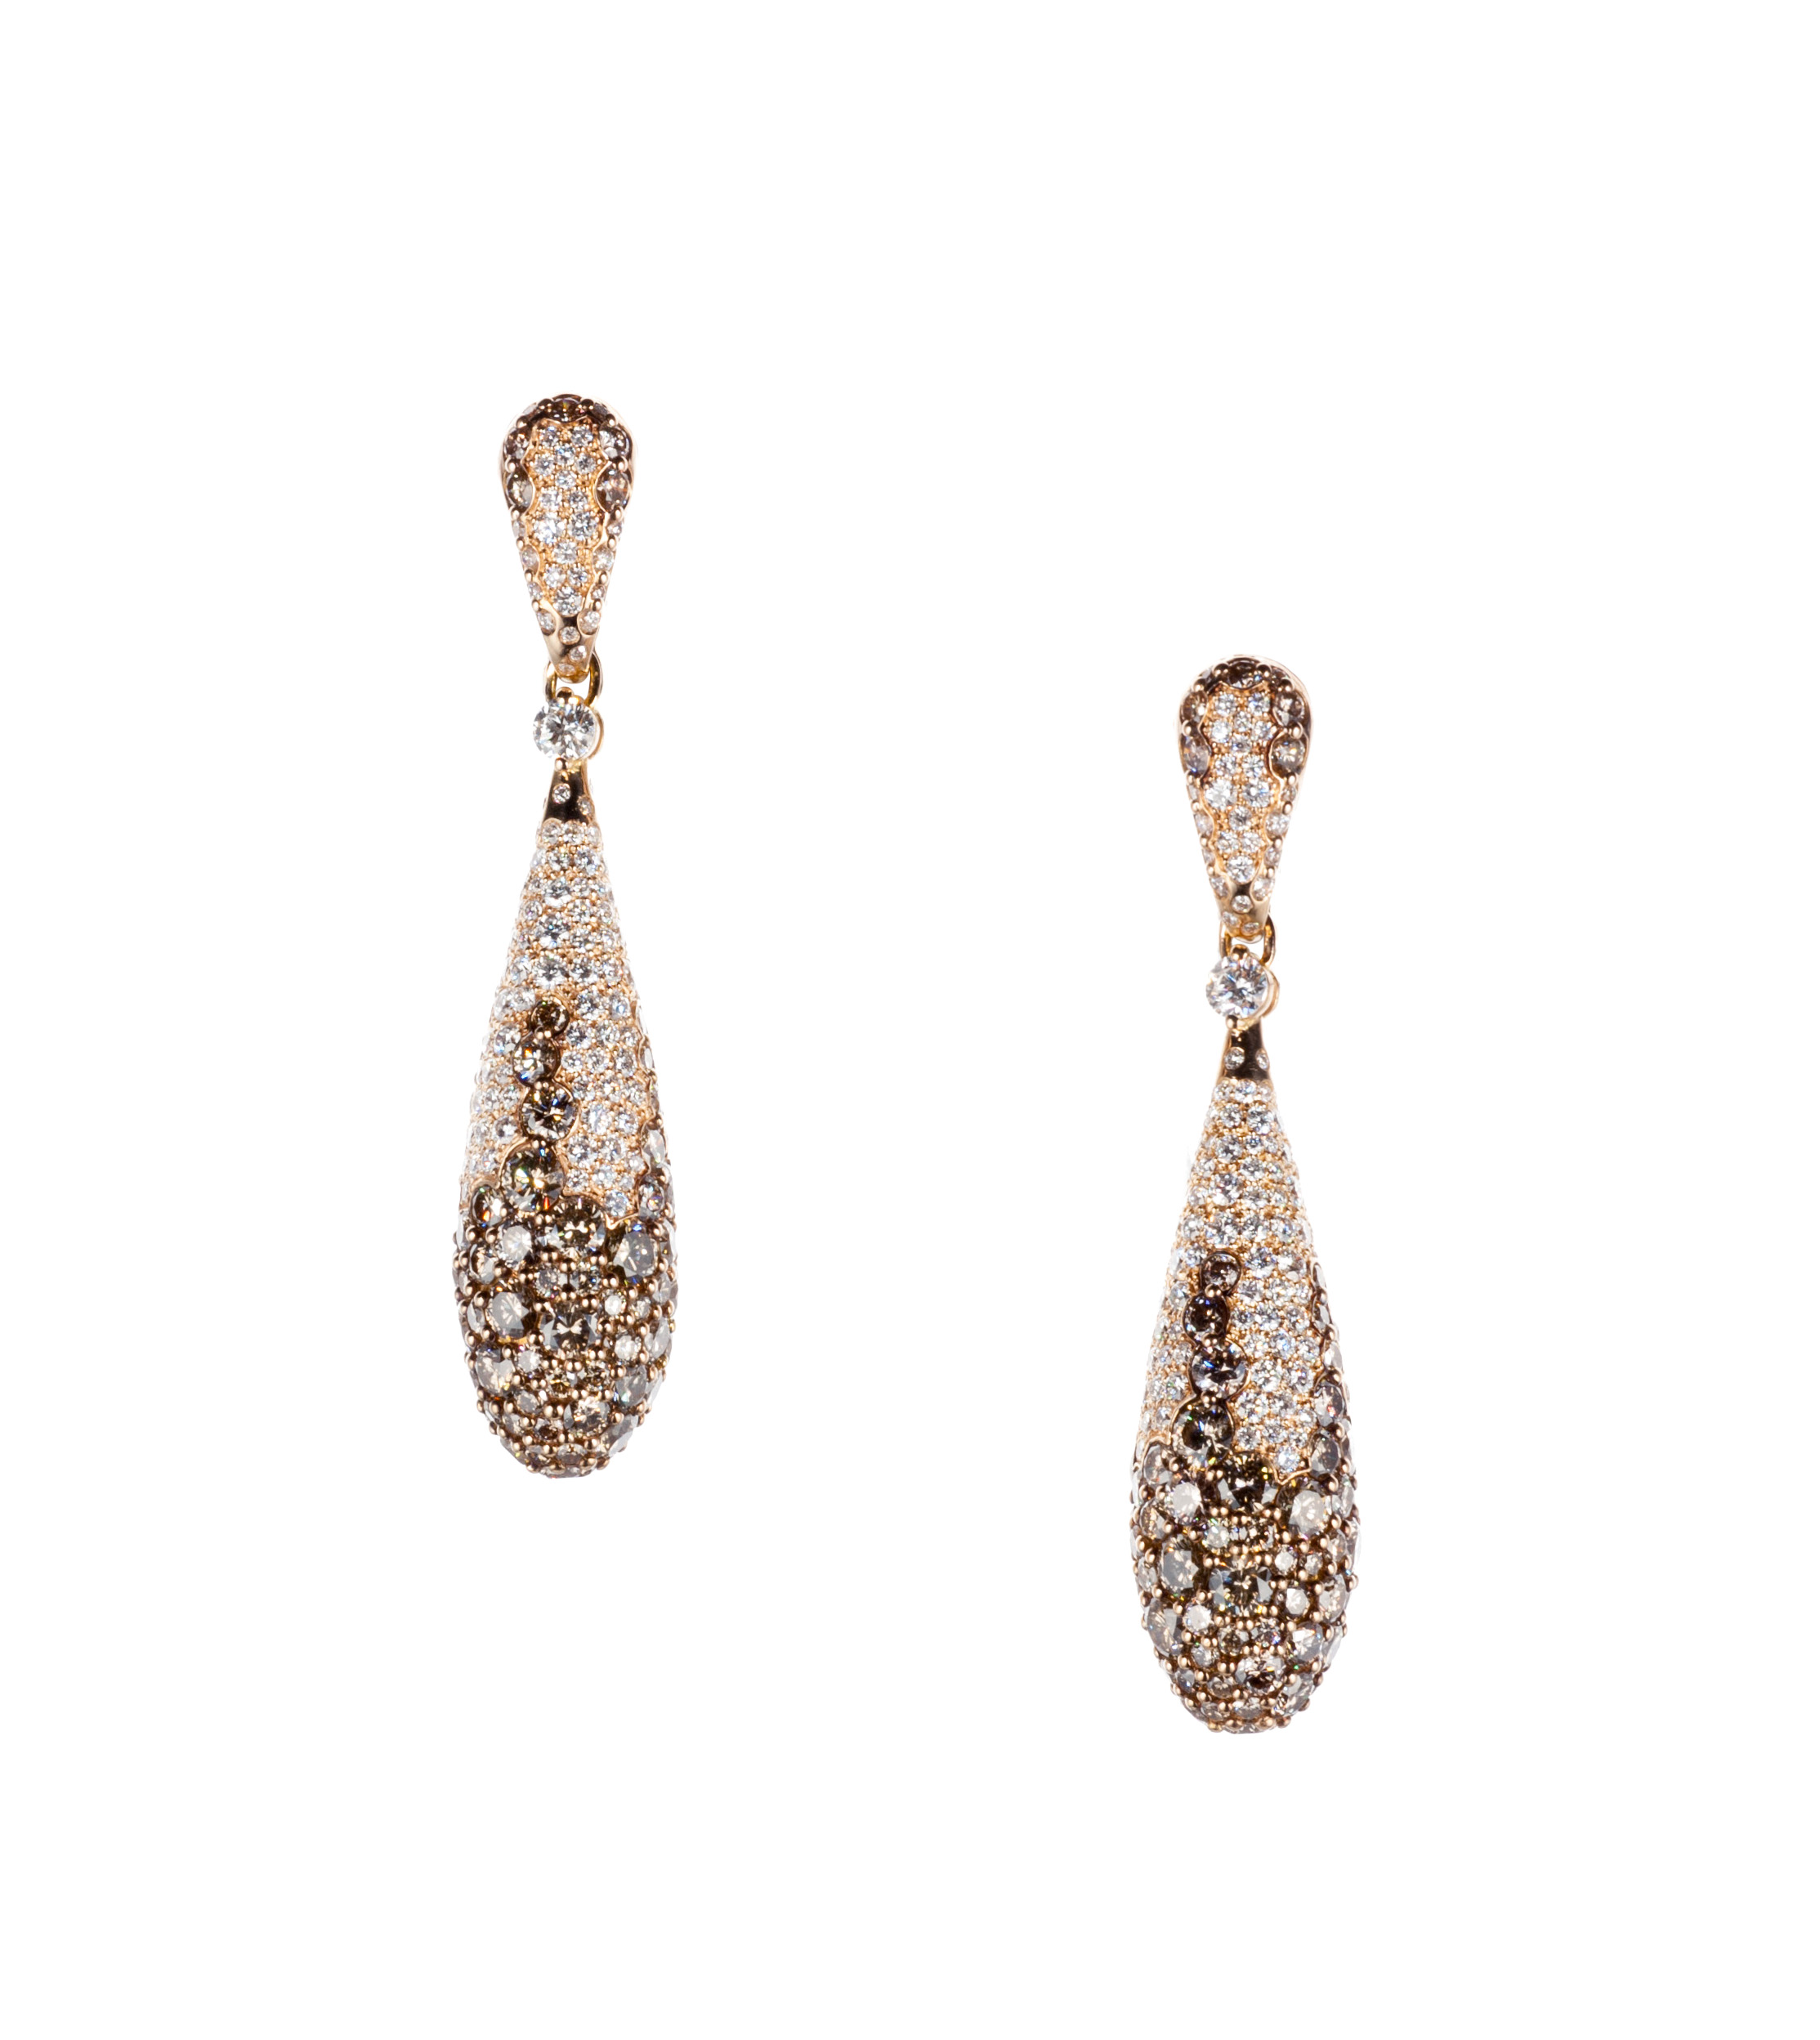 Rose gold and brown diamond drop earrings